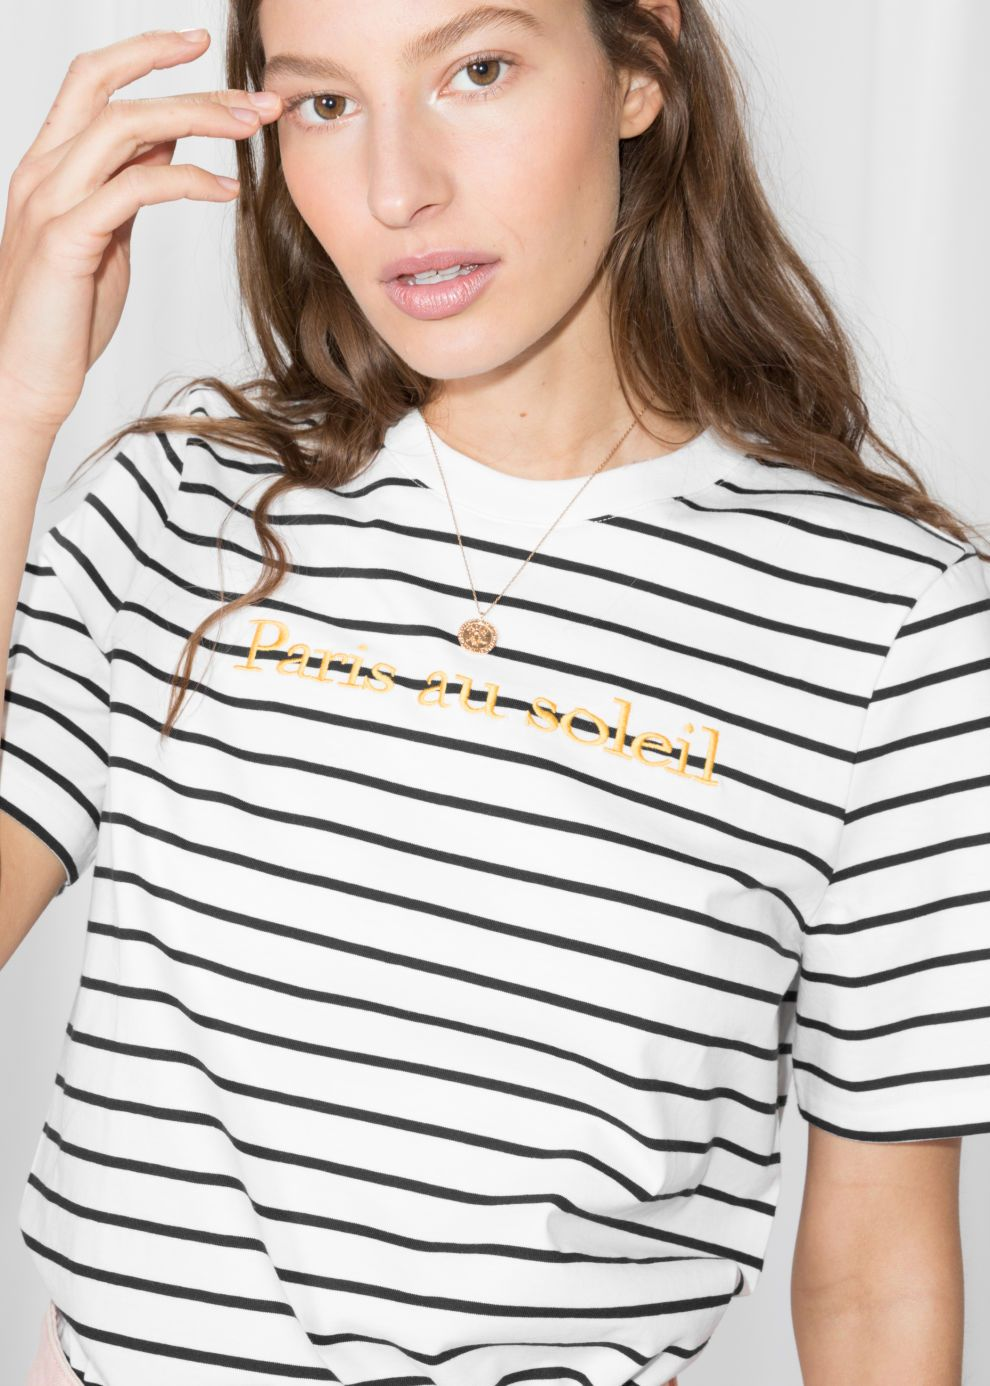 7e280149e Embroidered Striped Shirt - Black / White - Striped T-shirts - & Other  Stories